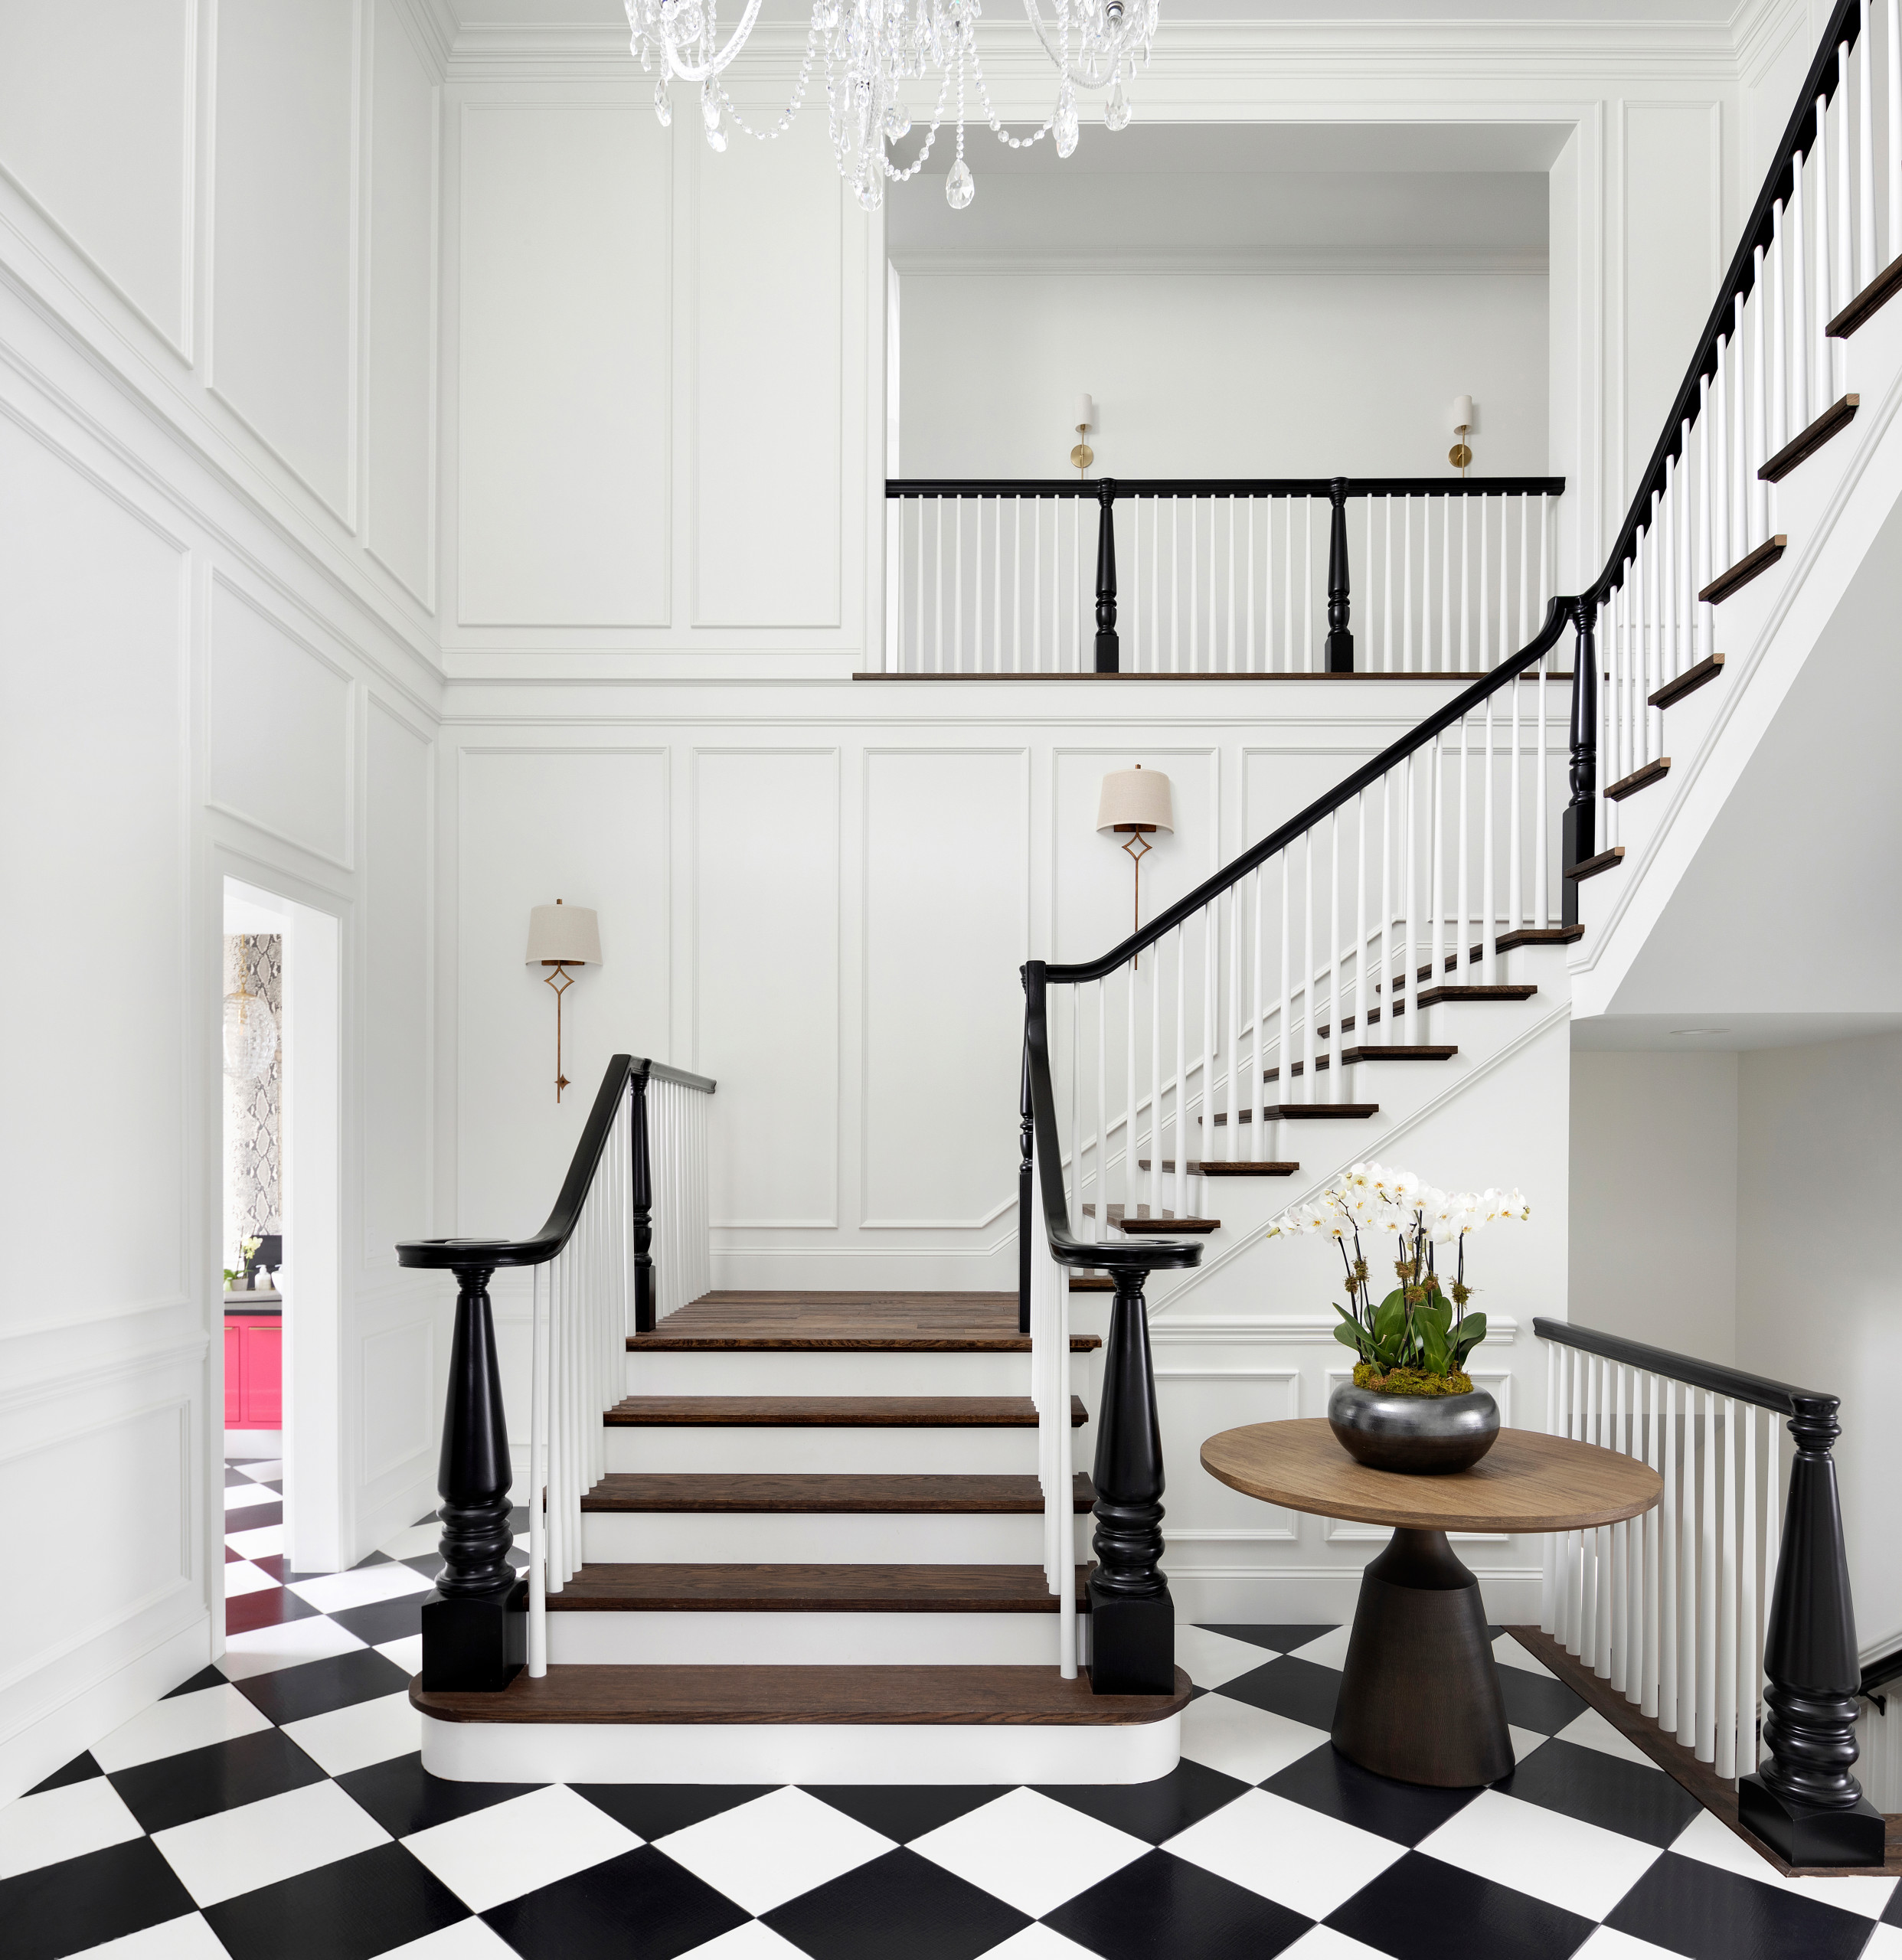 75 Beautiful Staircase Pictures Ideas March 2021 Houzz